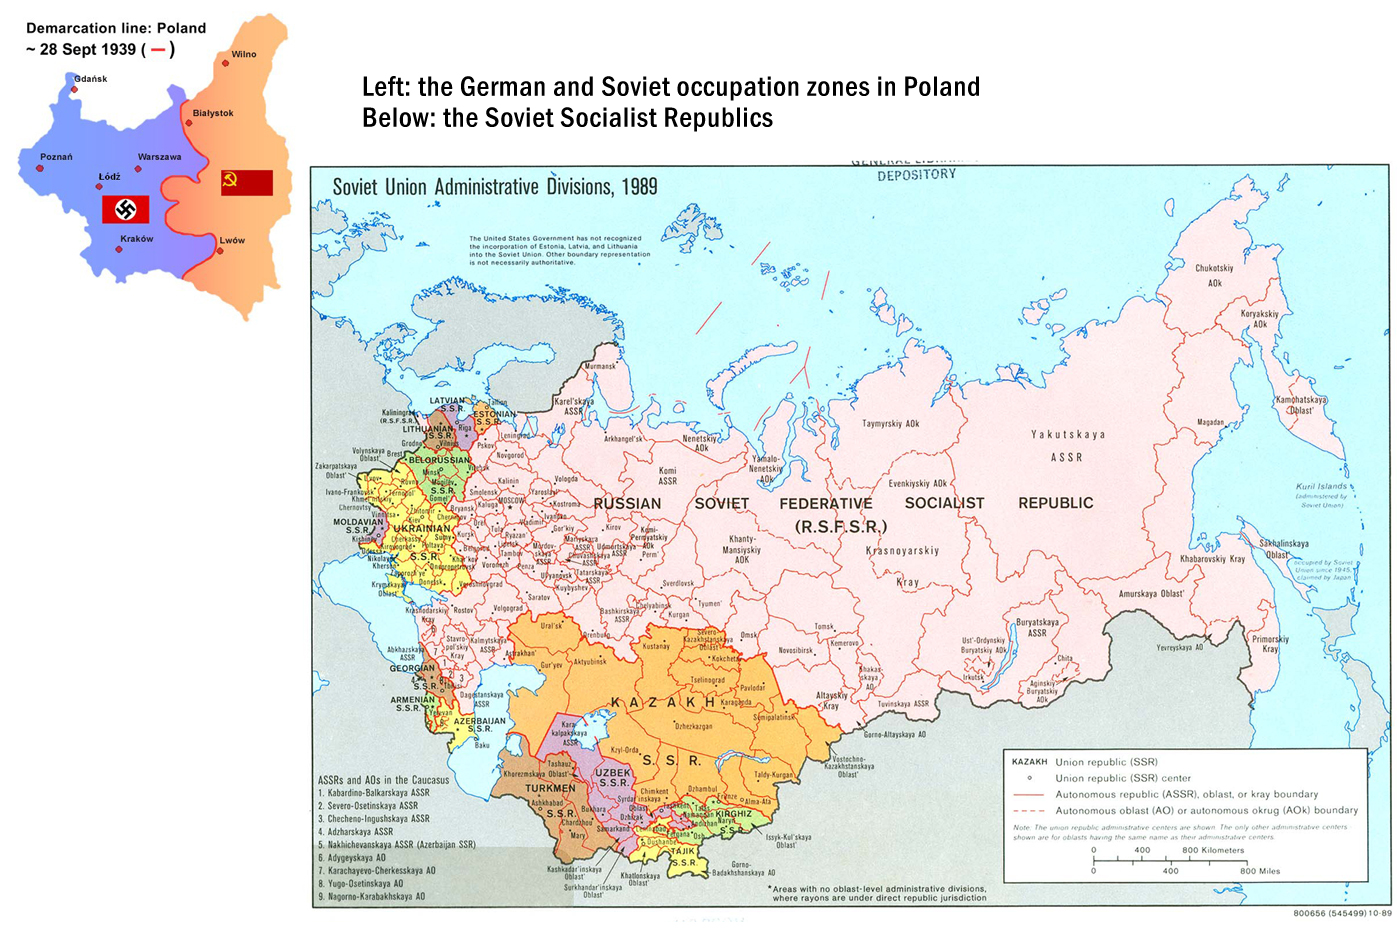 Which Two Major Allied Nations Appear On The Map